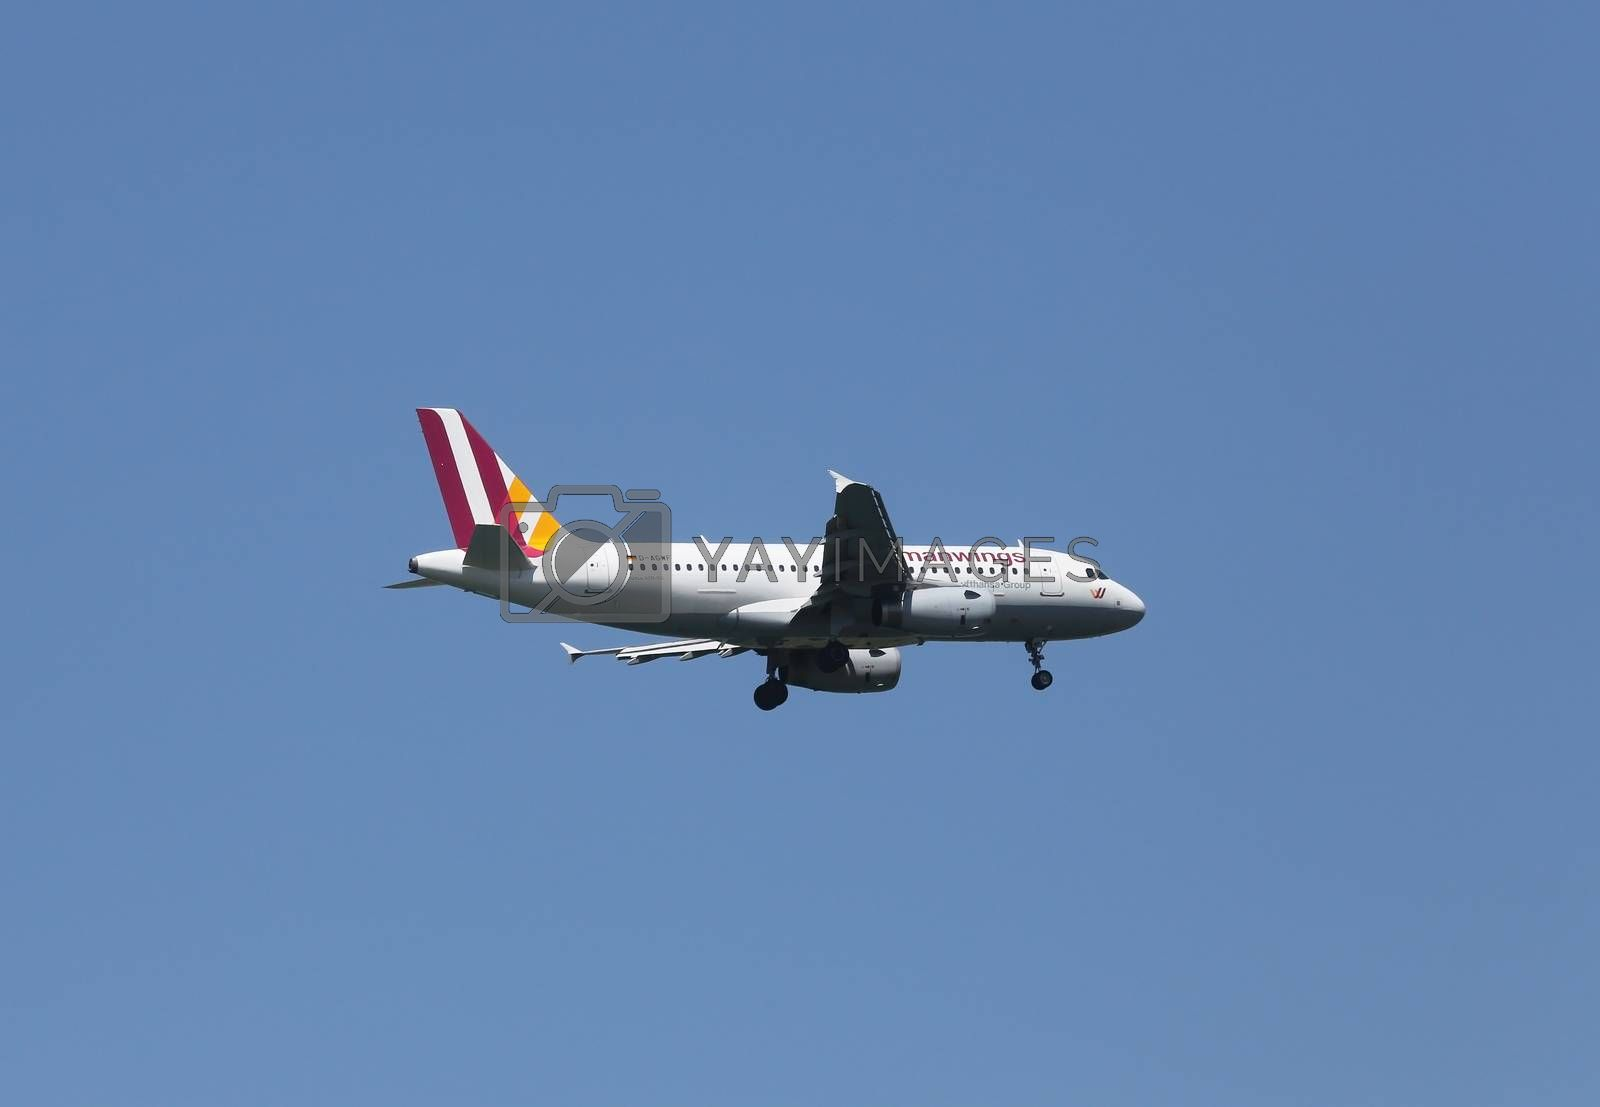 Airbus A319, registration D-AGWF of Germanwings landing on Zagreb Airport Pleso